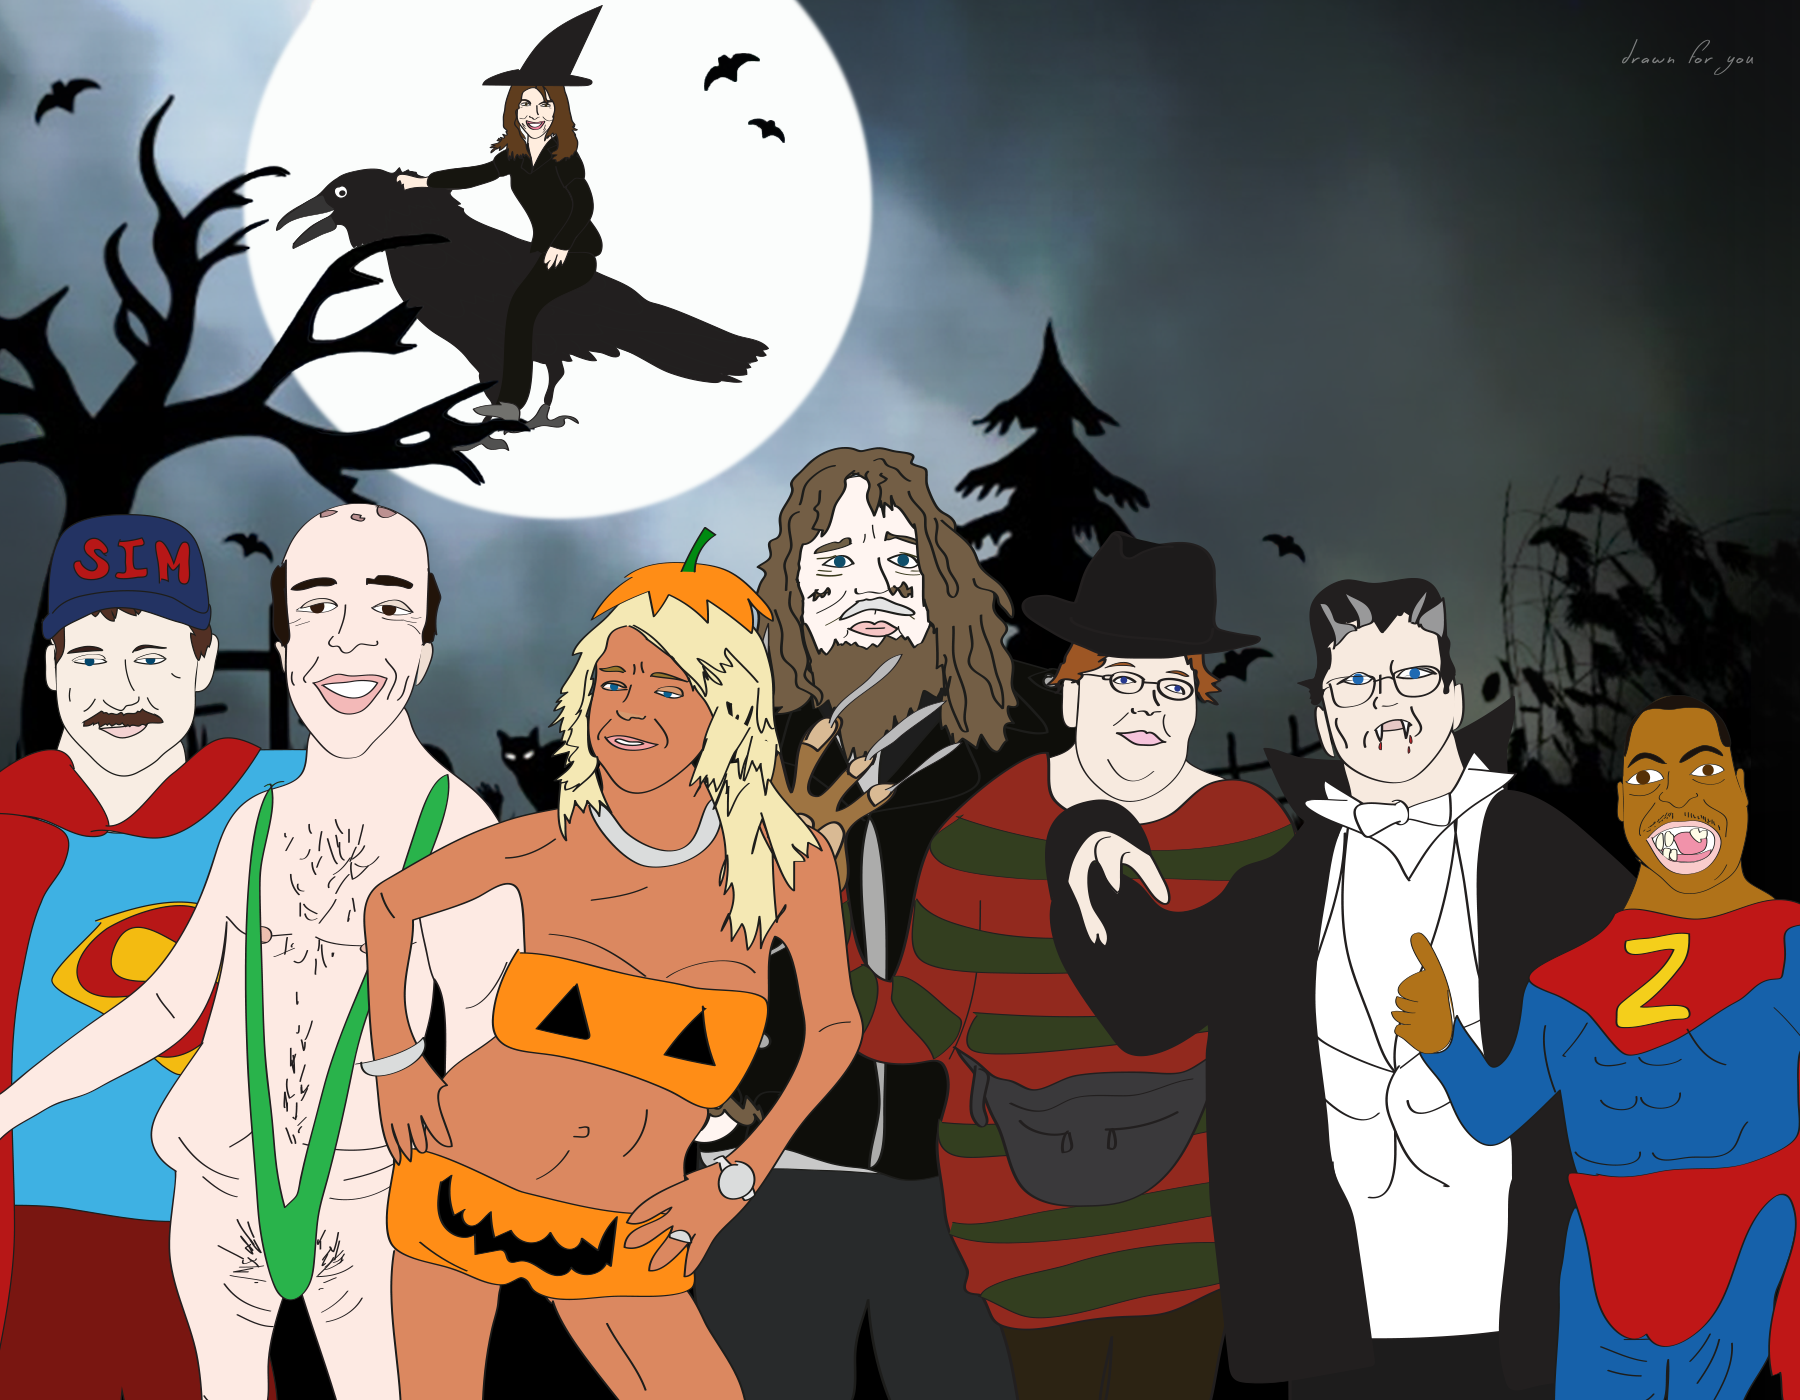 TOP: Mariann from Brooklyn   L to R: Speech Impediment Man, Bobo, TanMom, Bigfoot, Wendy the Slow Adult, Gary the Conqueror, Beetlejuice